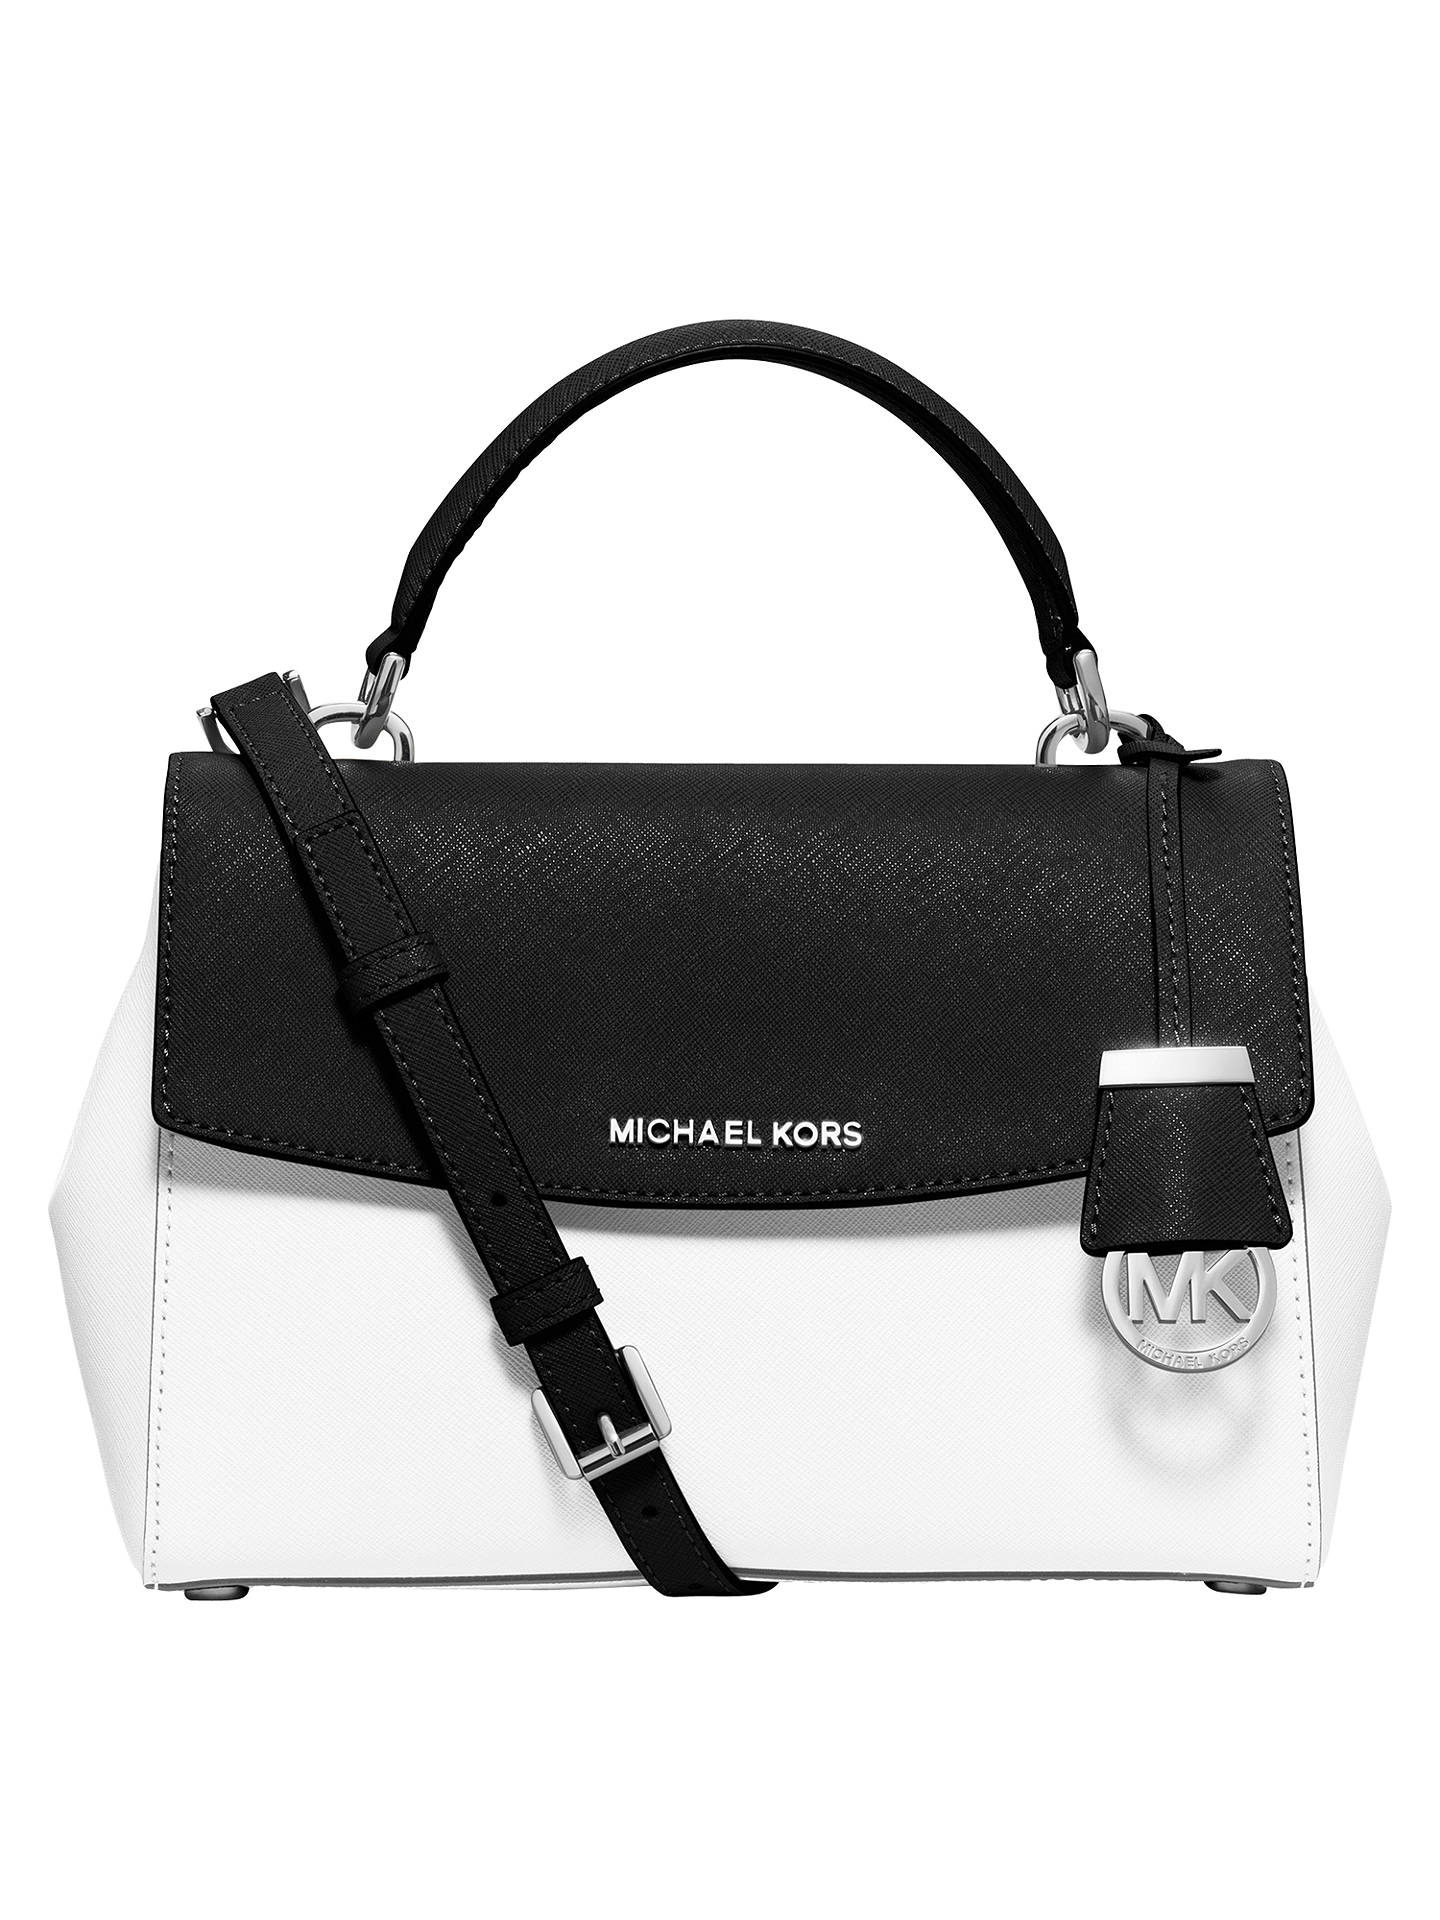 6579f9f74a85 Buy MICHAEL Michael Kors Ava Small Leather Satchel, Black / White Online at  johnlewis.